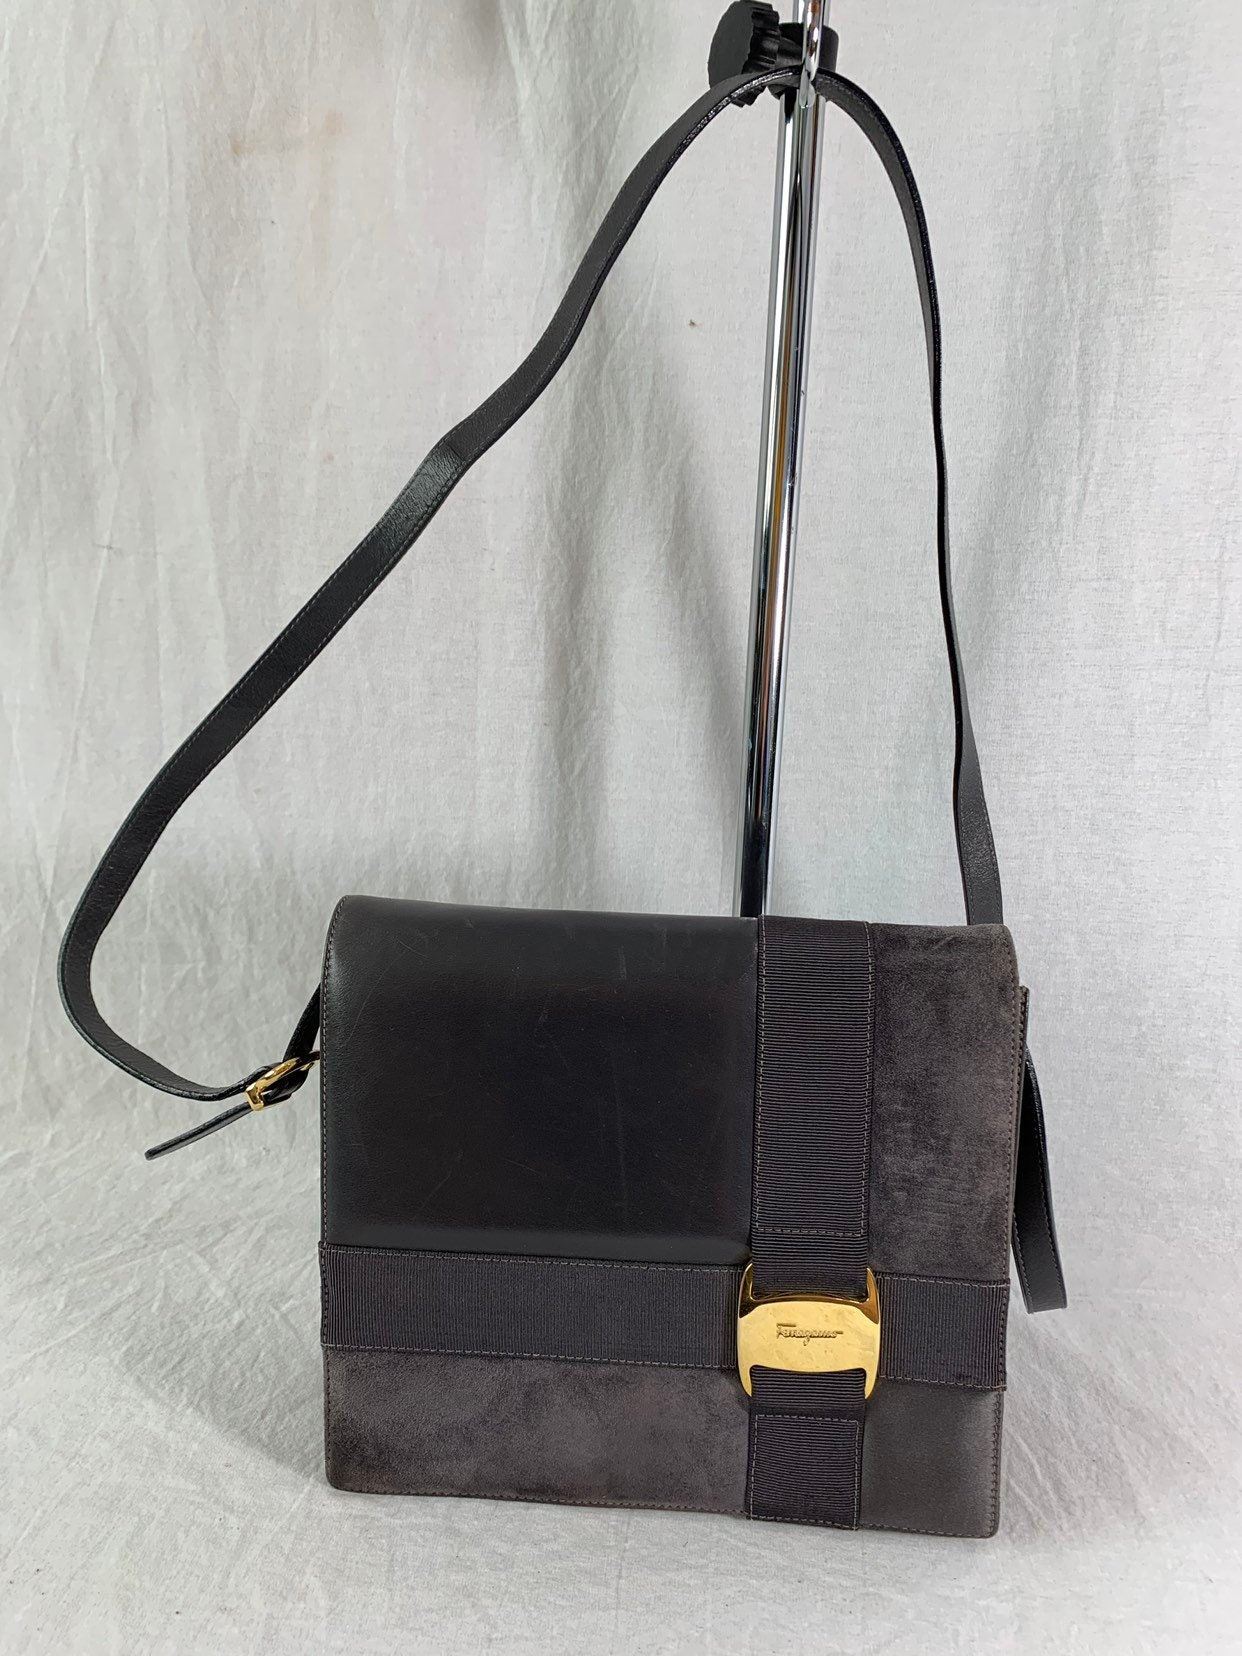 2dccbb401123 Salvatore Ferragamo Bow Authentic Vintage Gray Leather Crossbody Bag  Shoulder Bag Made in Italy